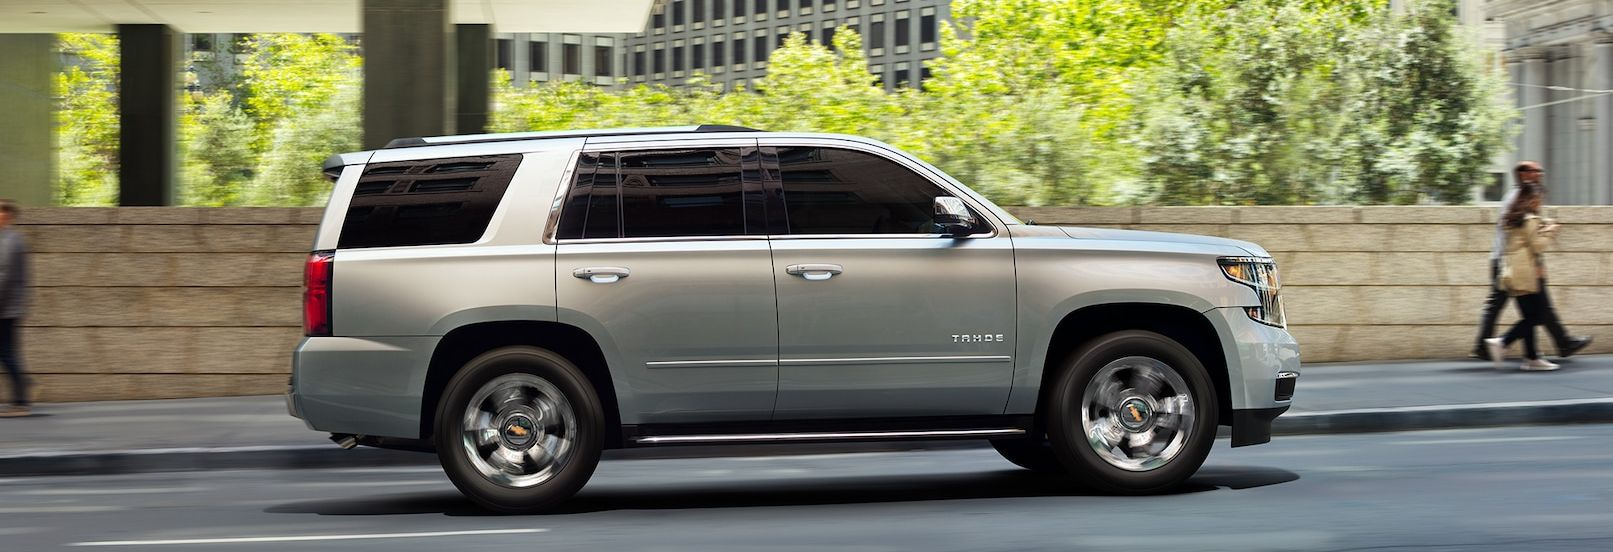 2019 Chevrolet Tahoe Leasing near Mobile, AL